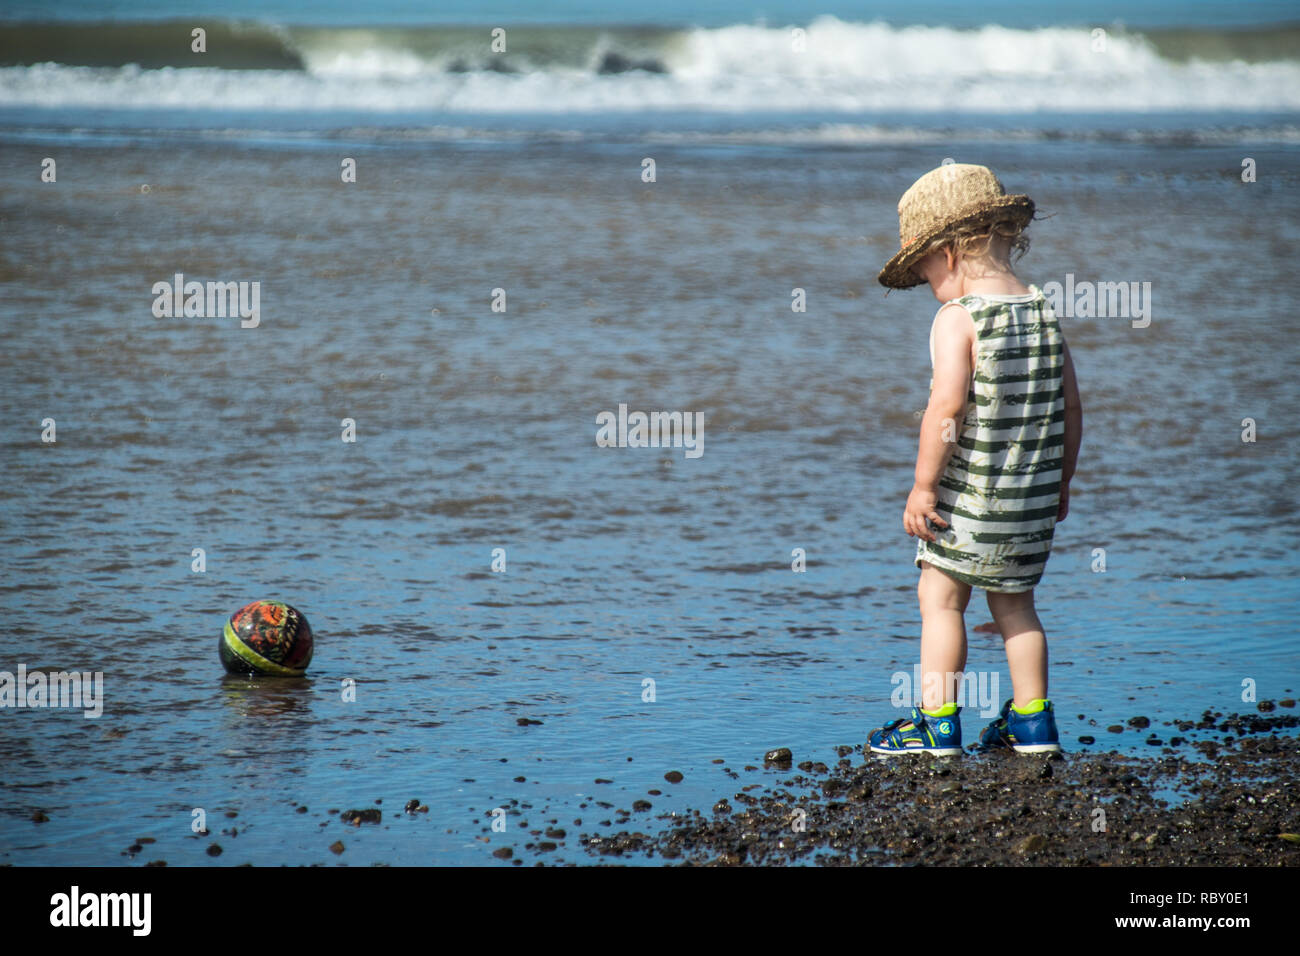 ec93e14296 A photo of a young boy standing at the sea and looking at his ball in the  water